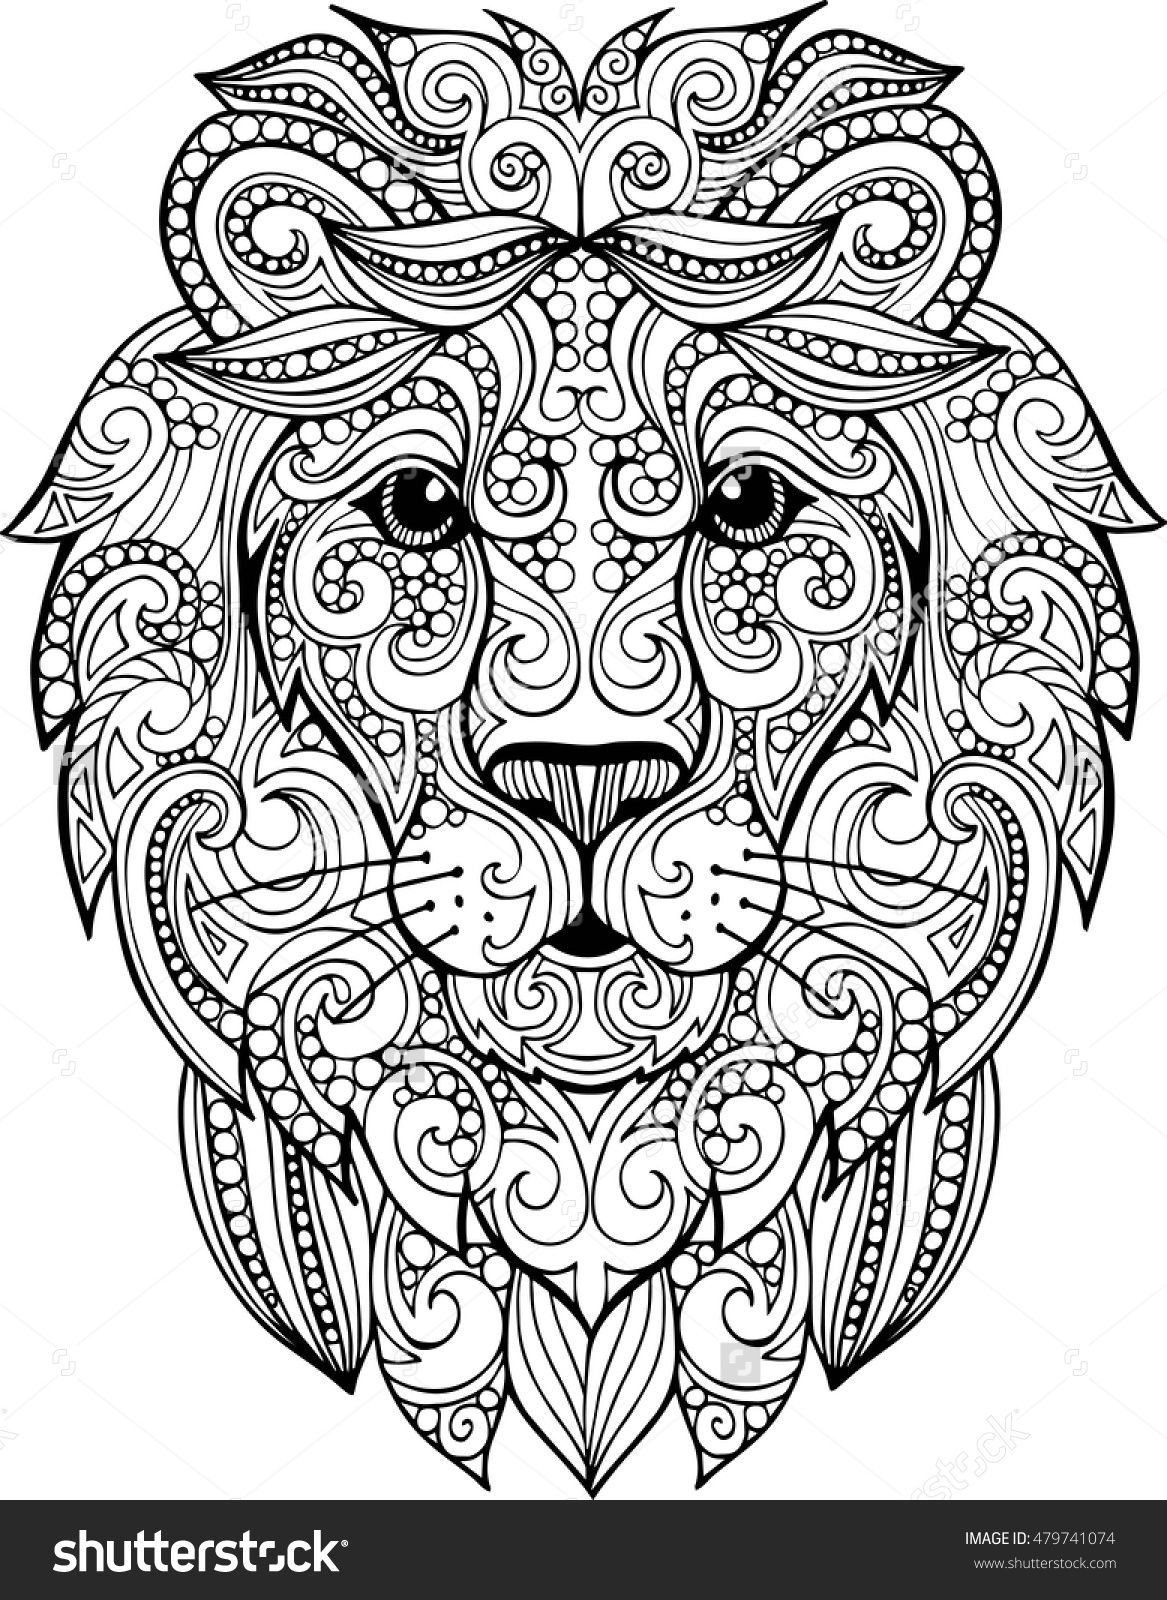 Hand Drawn Doodle Zentangle Lion